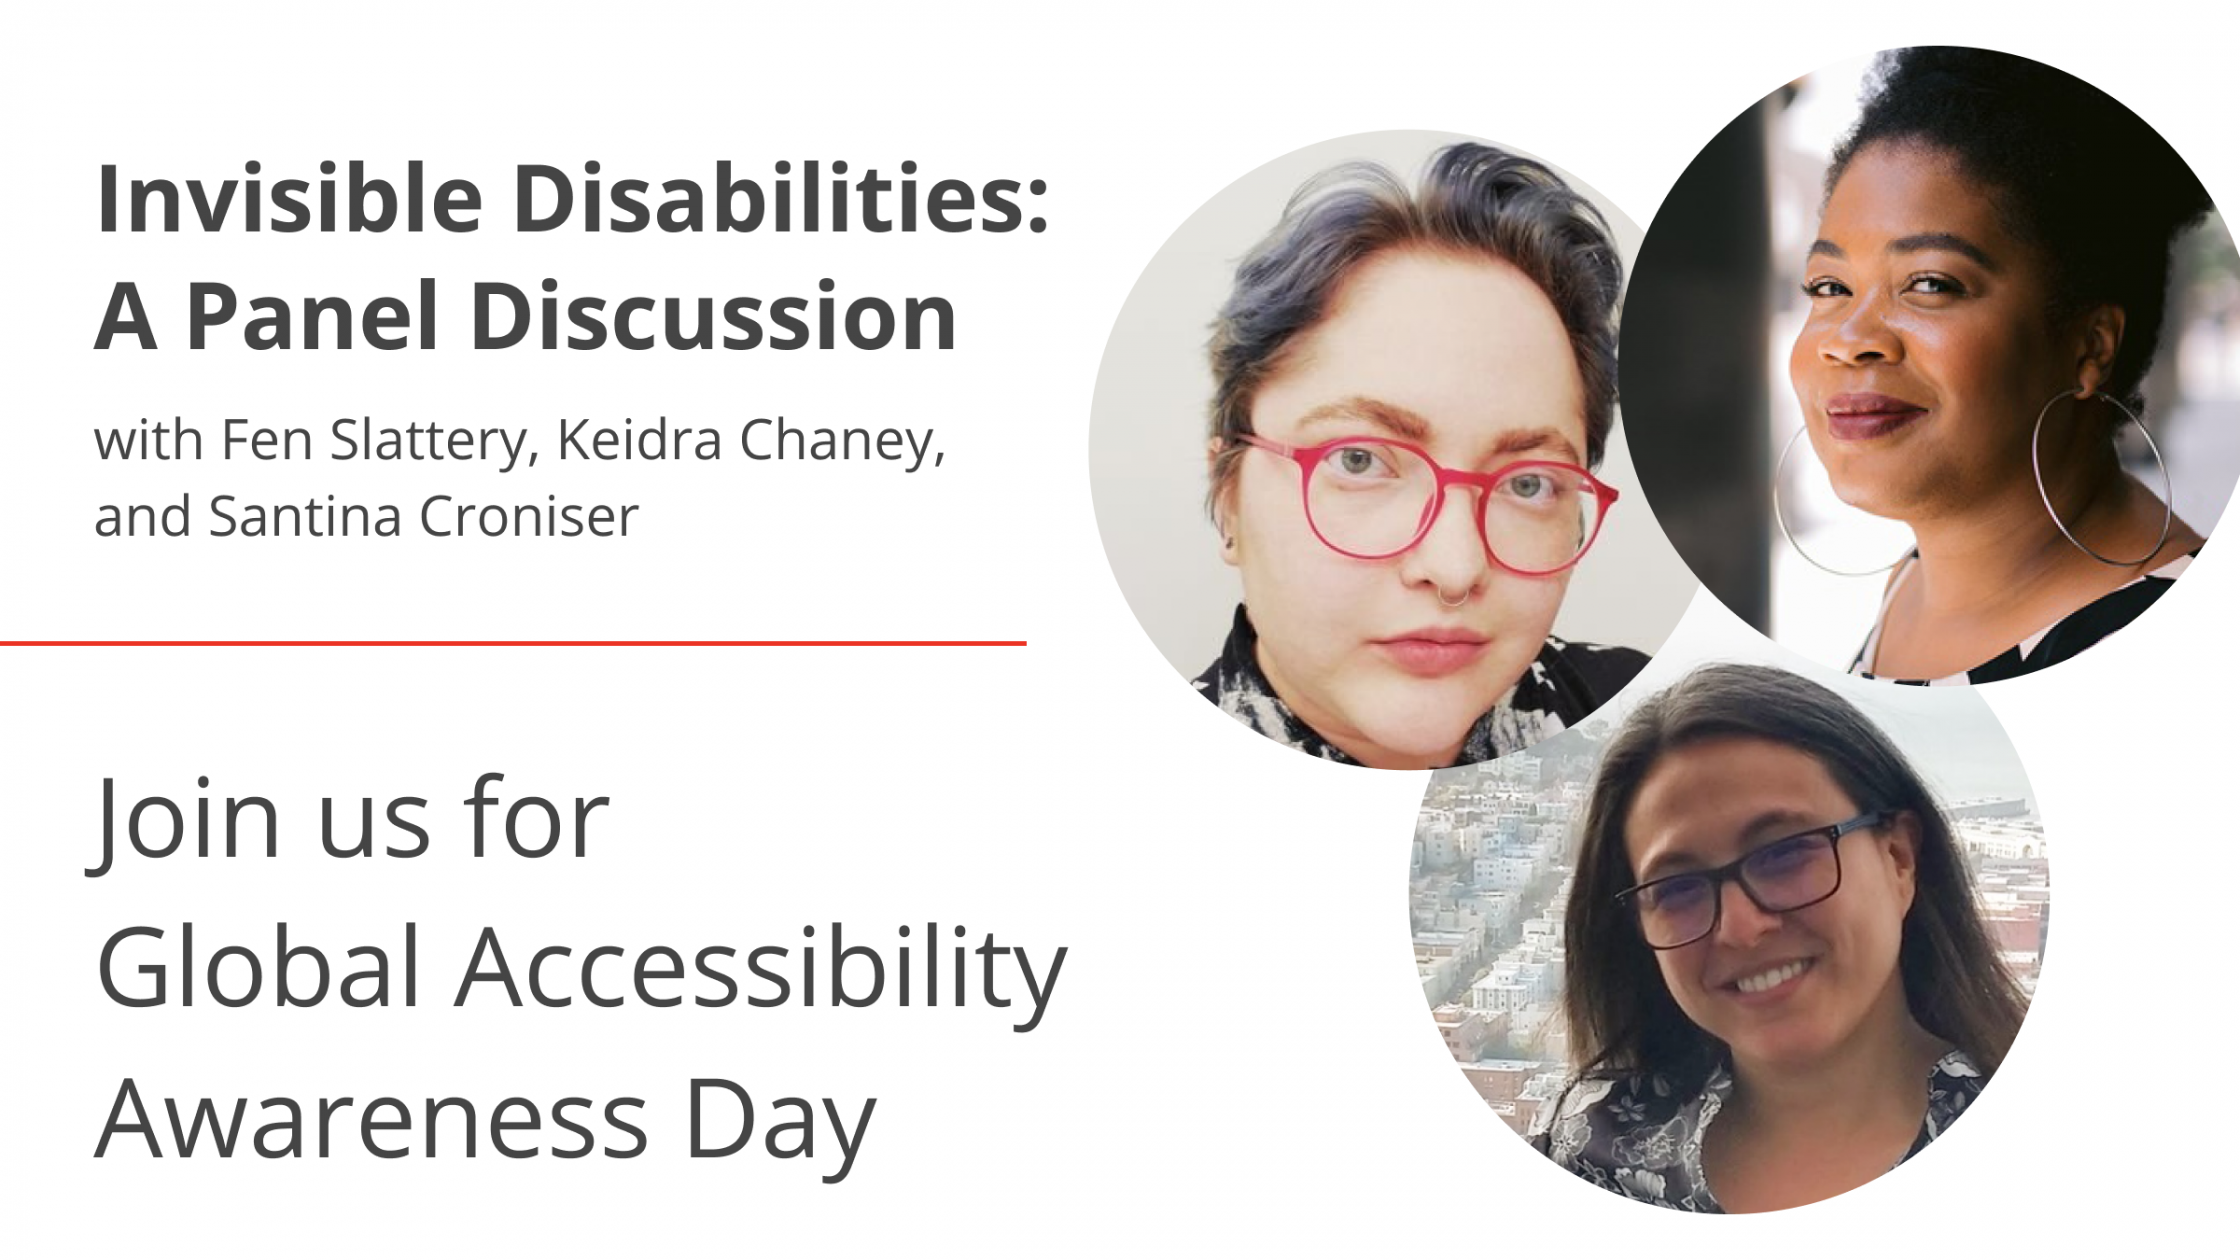 9+ 0:00 / 1:41:12 A11YChi - Invisible Disabilities: A Panel Discussion